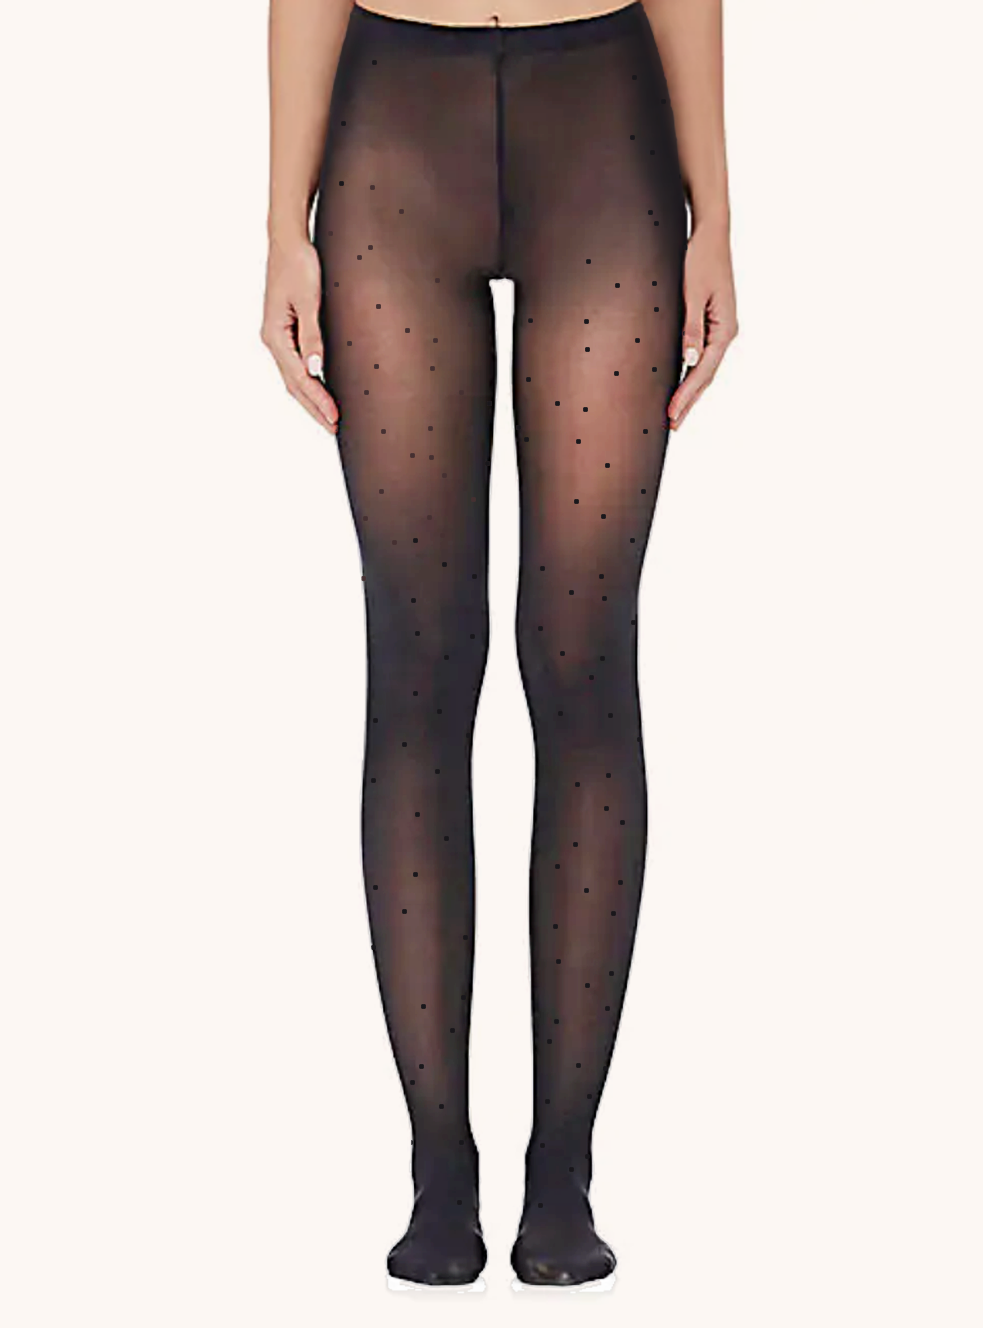 Mini Polka Dots Sheer Tights - Black